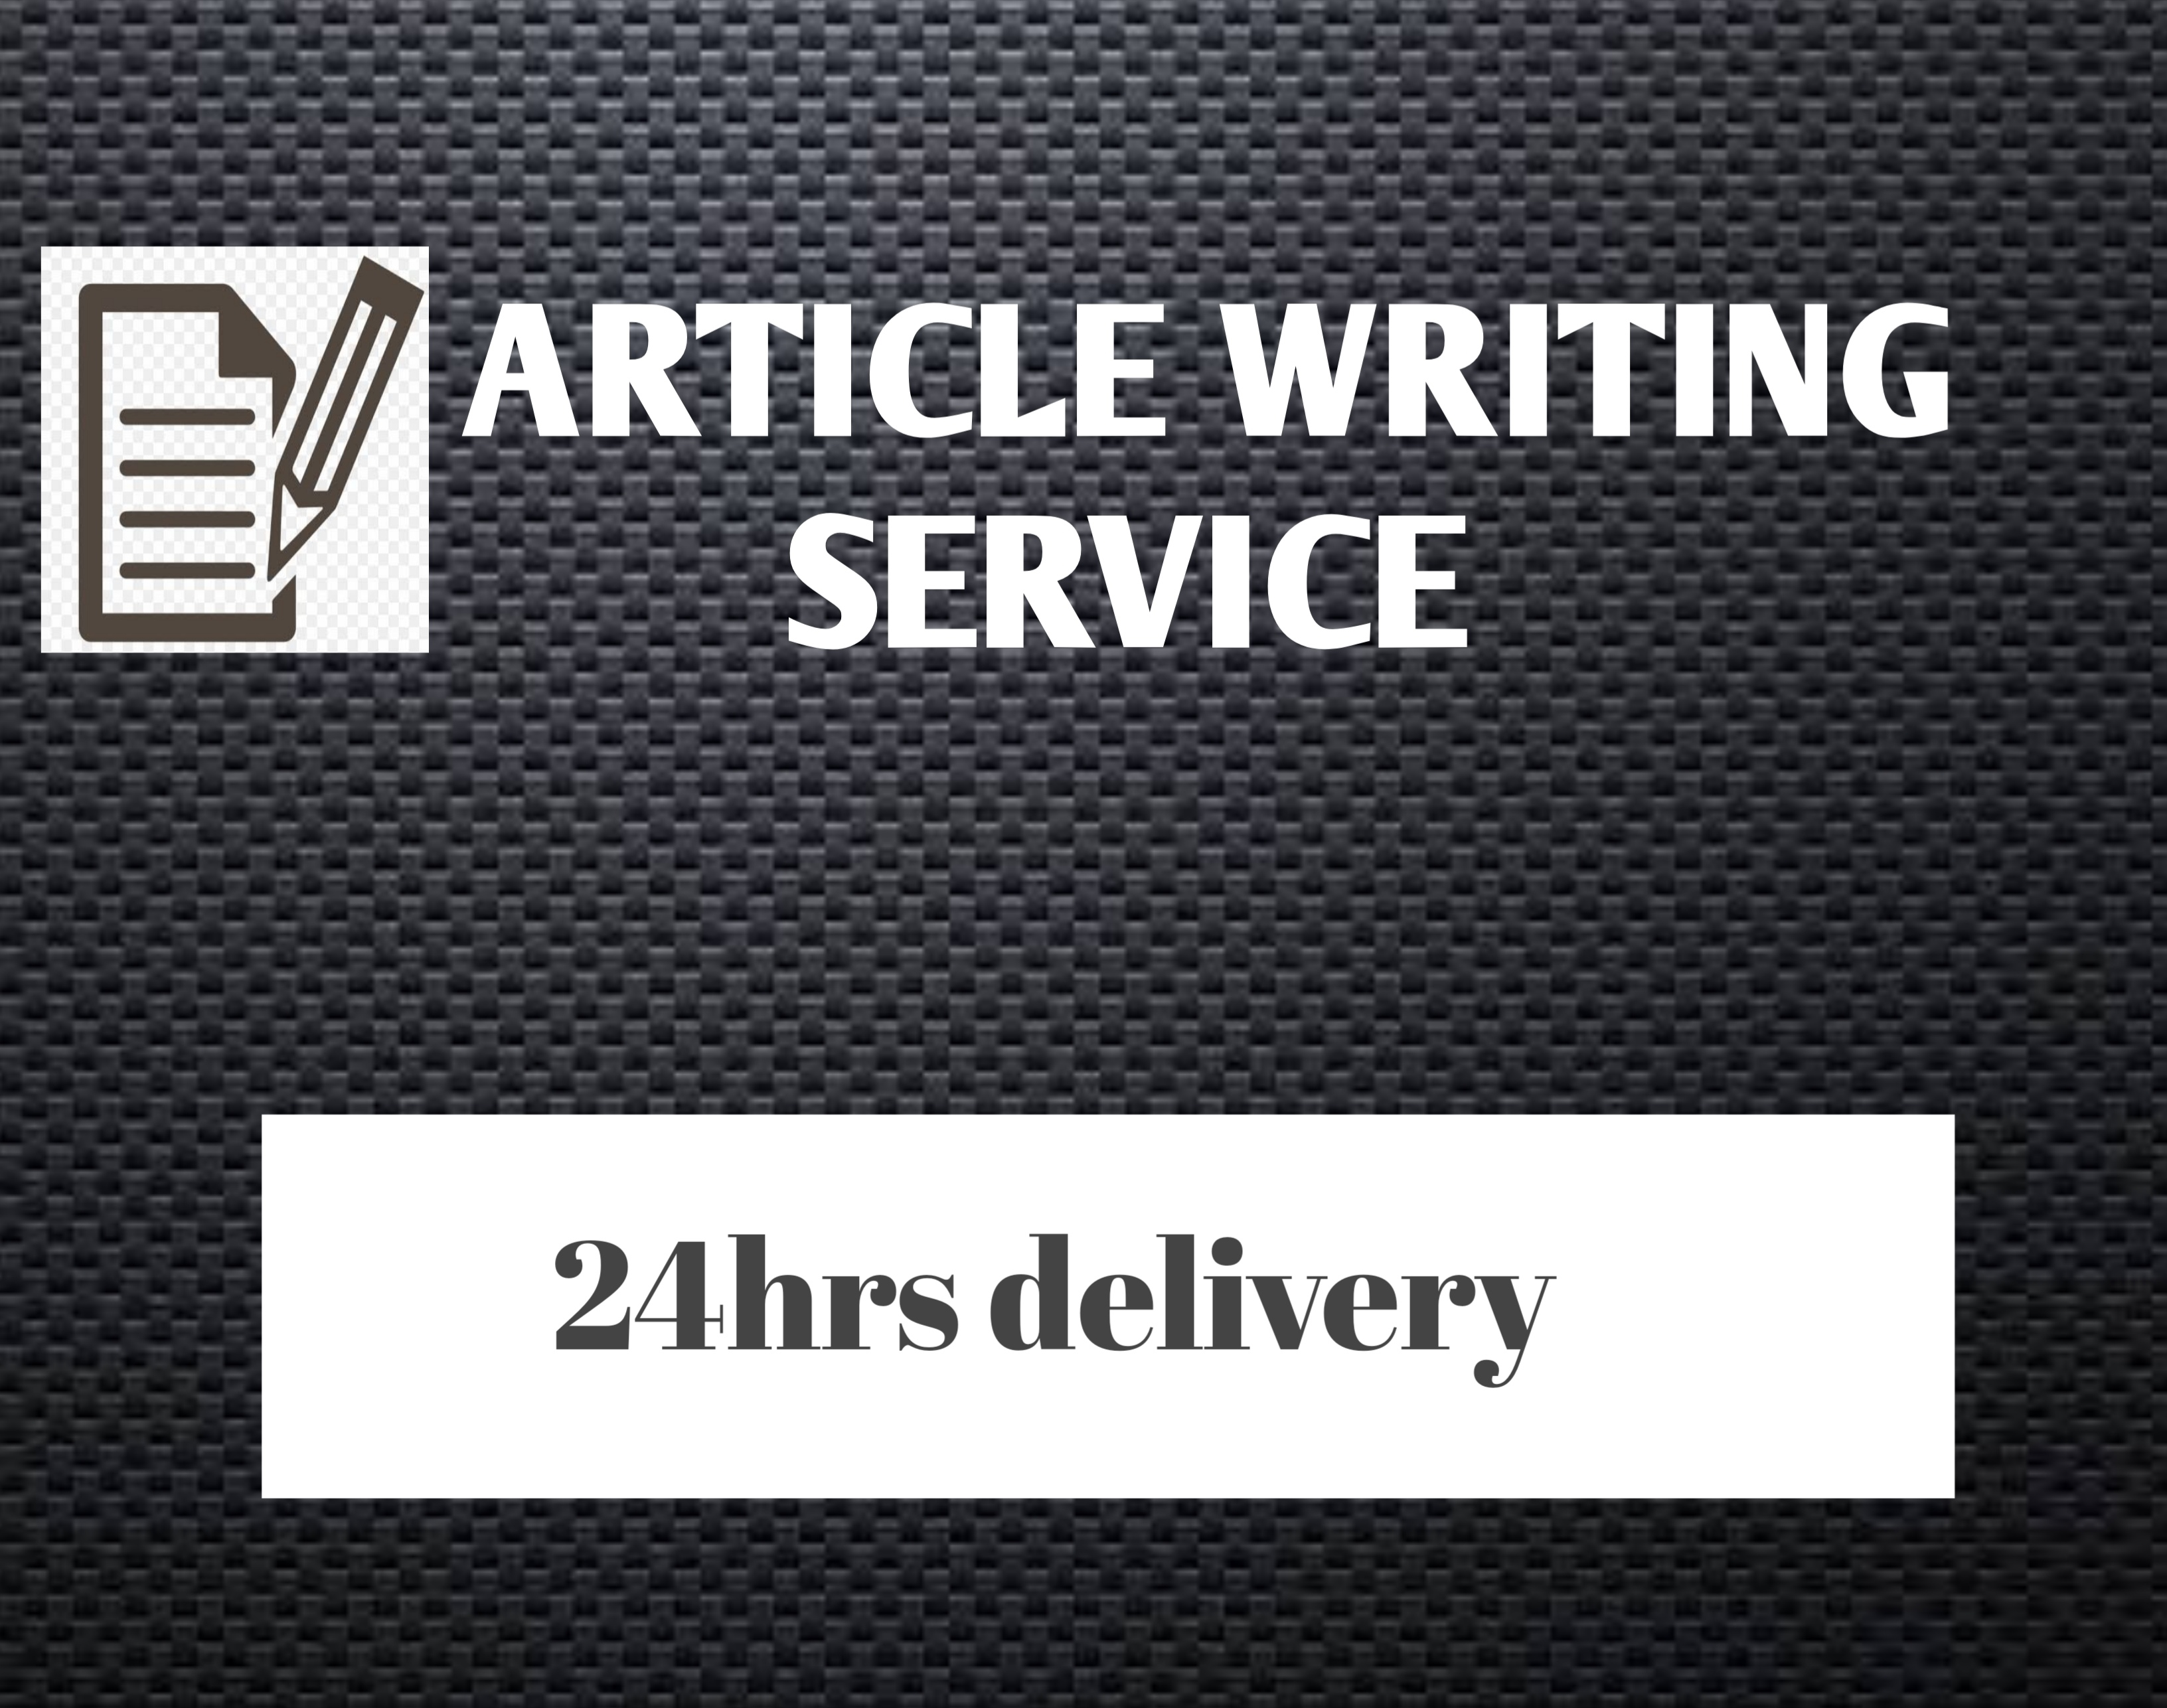 Get 1500-2000 words 100 copy-scape passed Article within 24hours